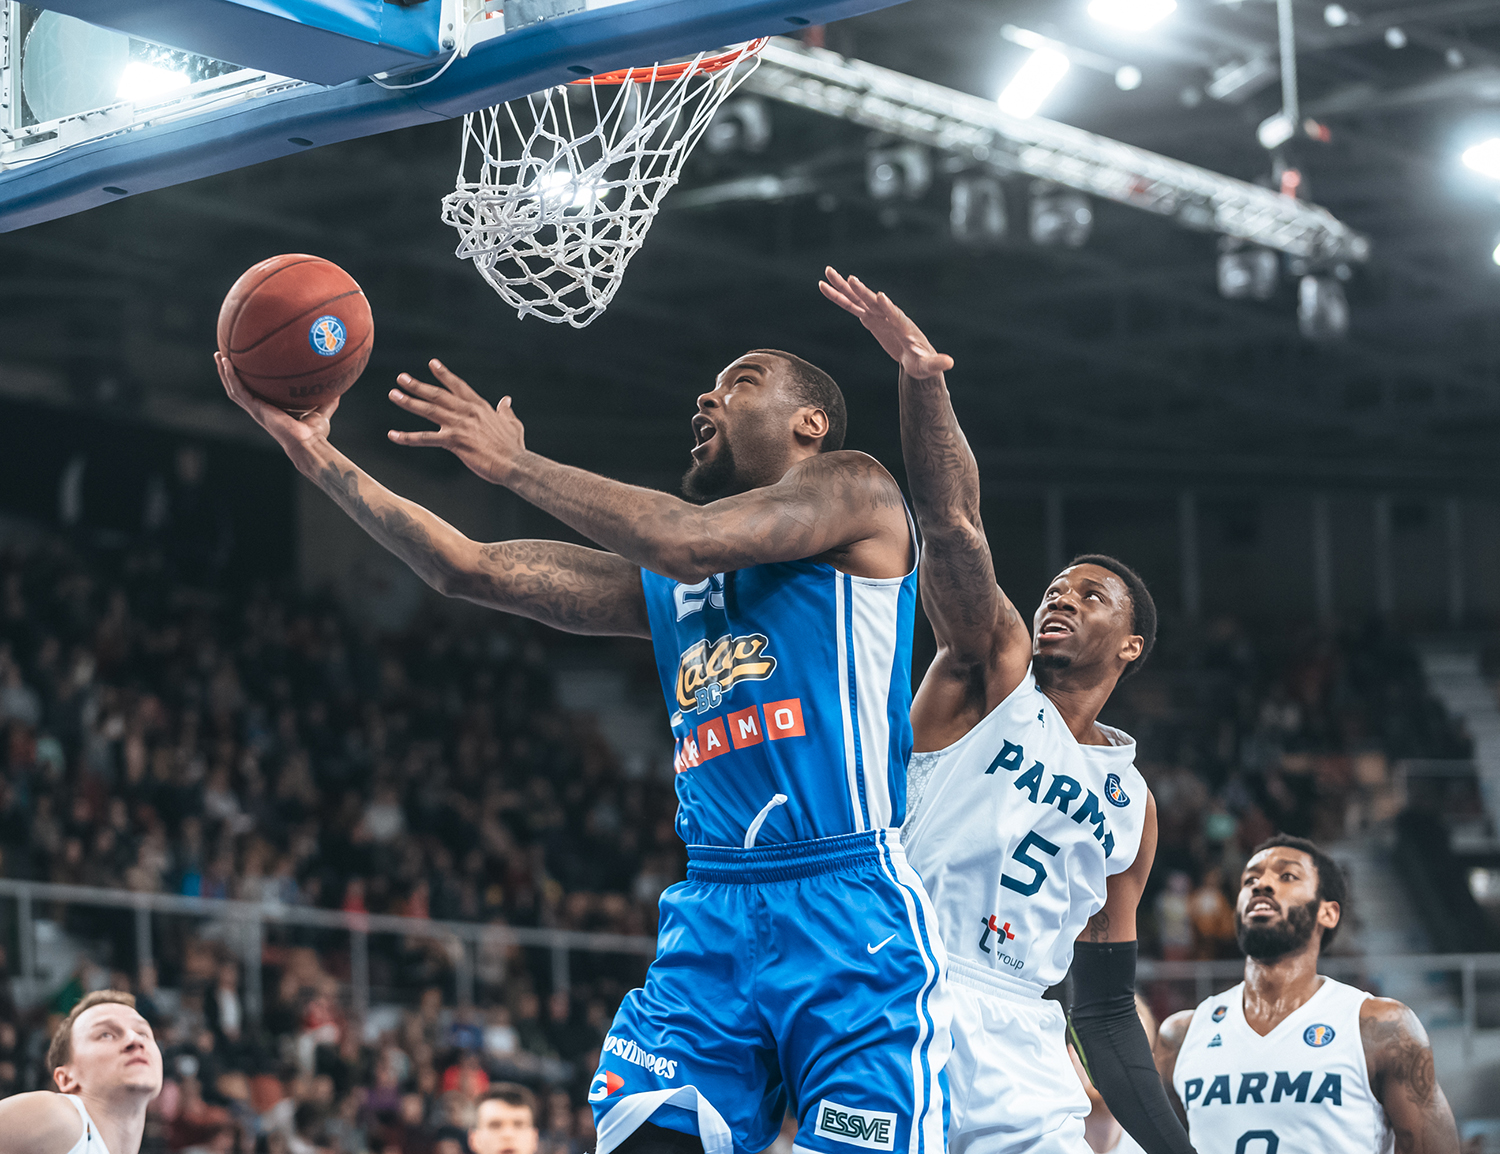 Kalev Overpowers PARMA, On Verge Of Postseason